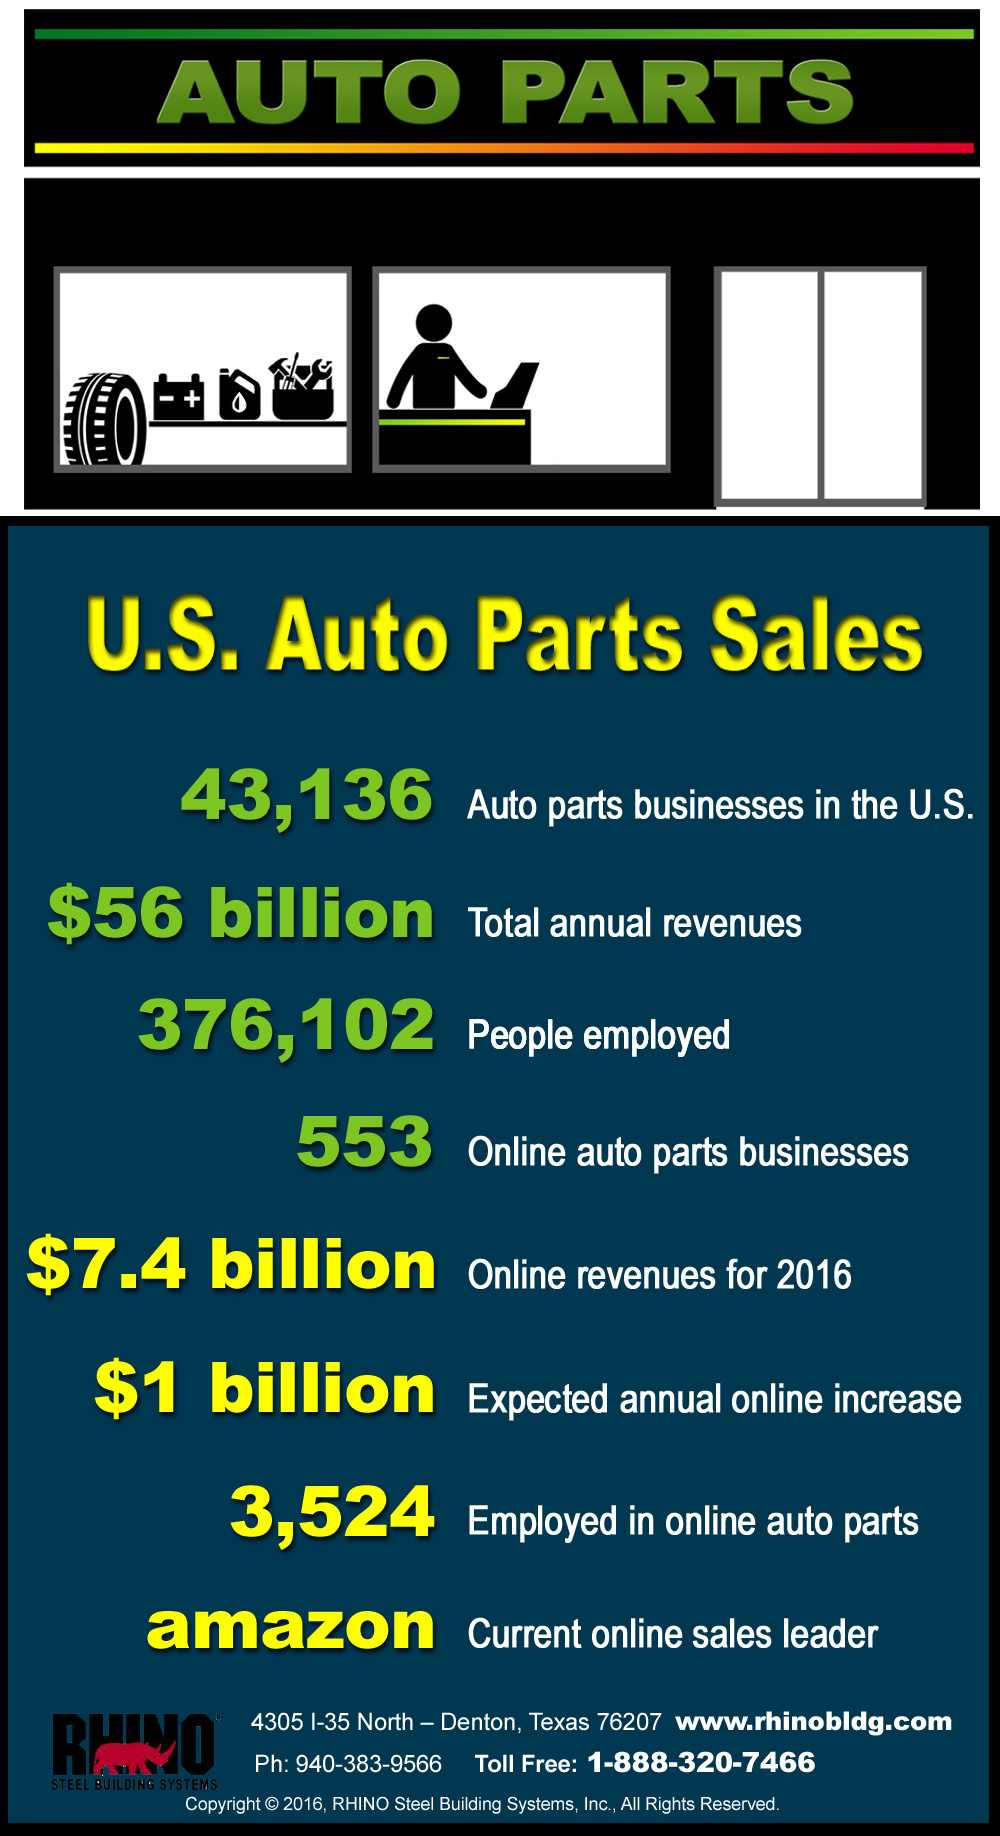 RHINO Steel Buildings Systems inforgraphic on Auto Parts Stores and Online Sales.